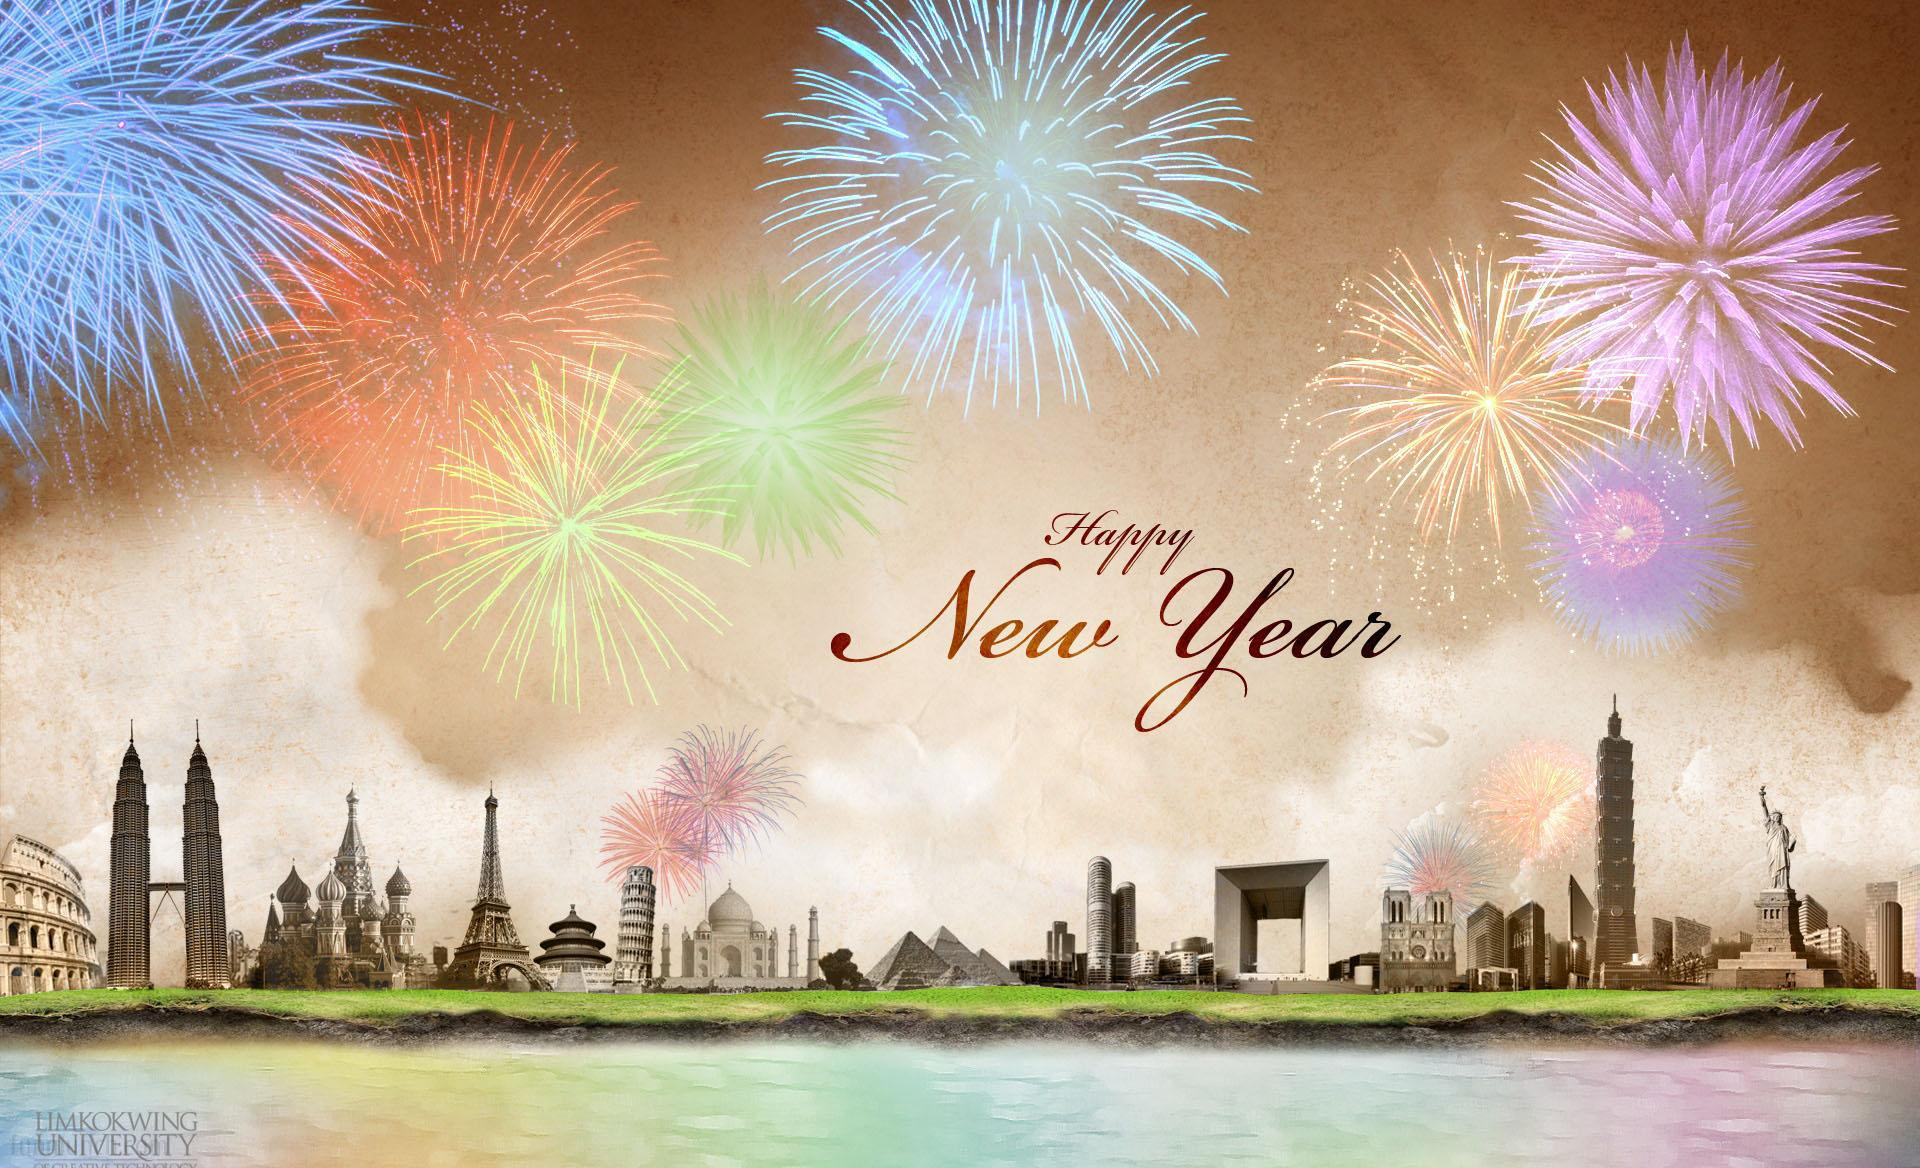 Happy New Year 2016 3d Wallpaper For Pc Happy New Year Backgrounds Hd Wallpapers Backgrounds